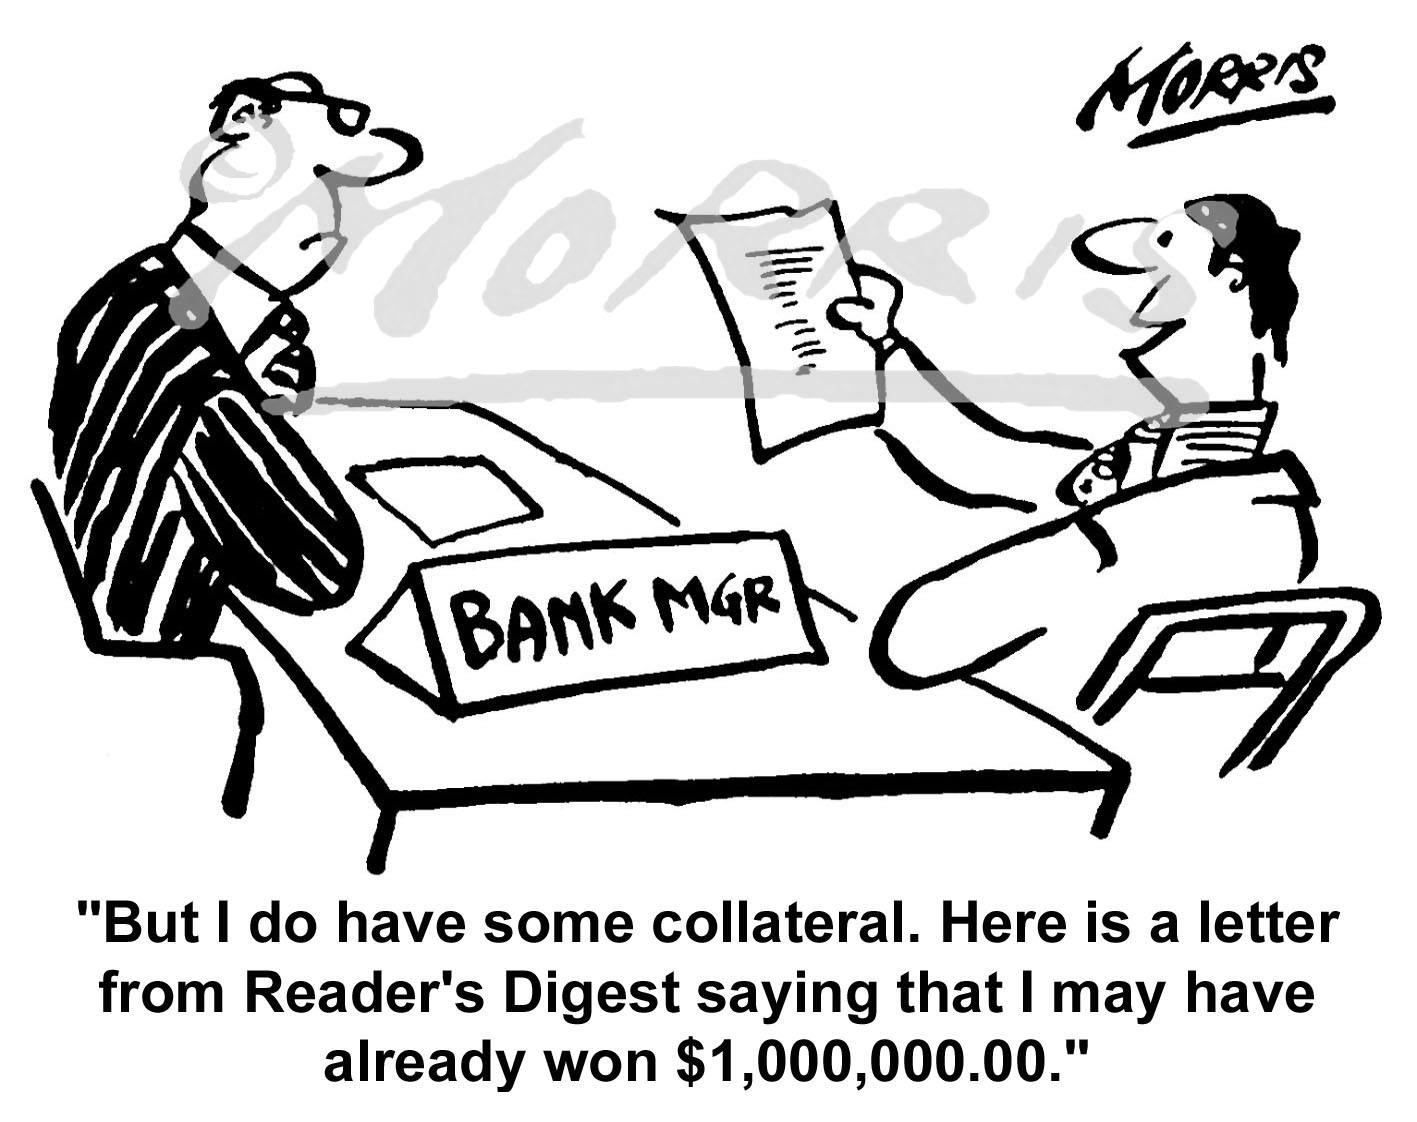 Bank Manager comic business cartoon Ref: 0177bwus